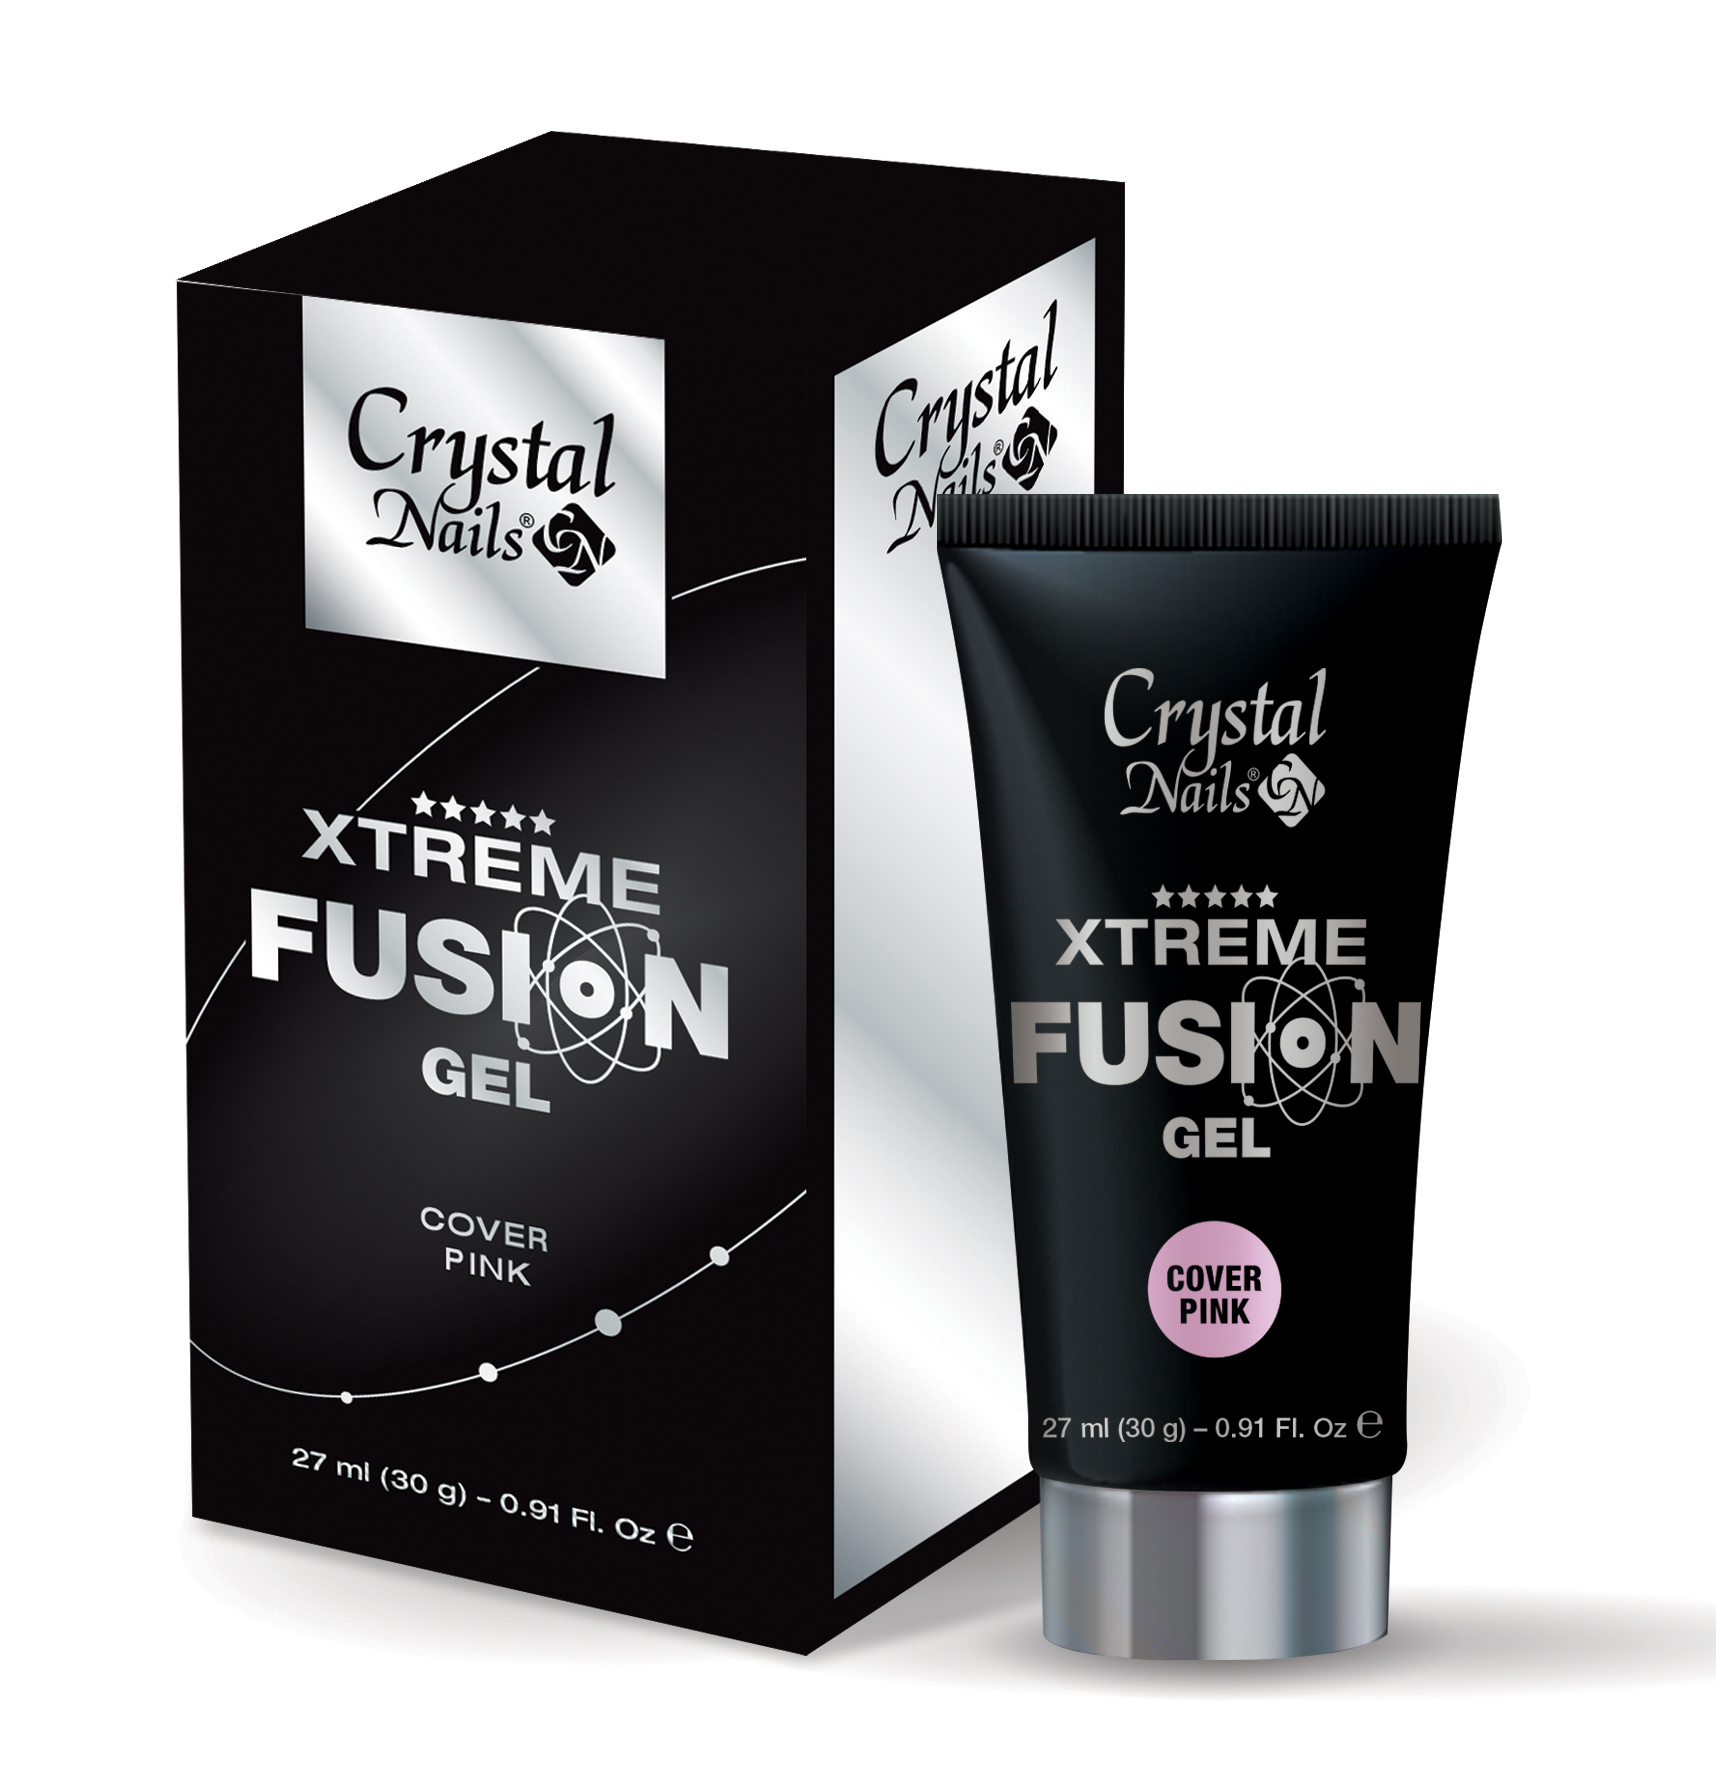 Xtreme Fusion AcrylGel Cover Pink - 30g